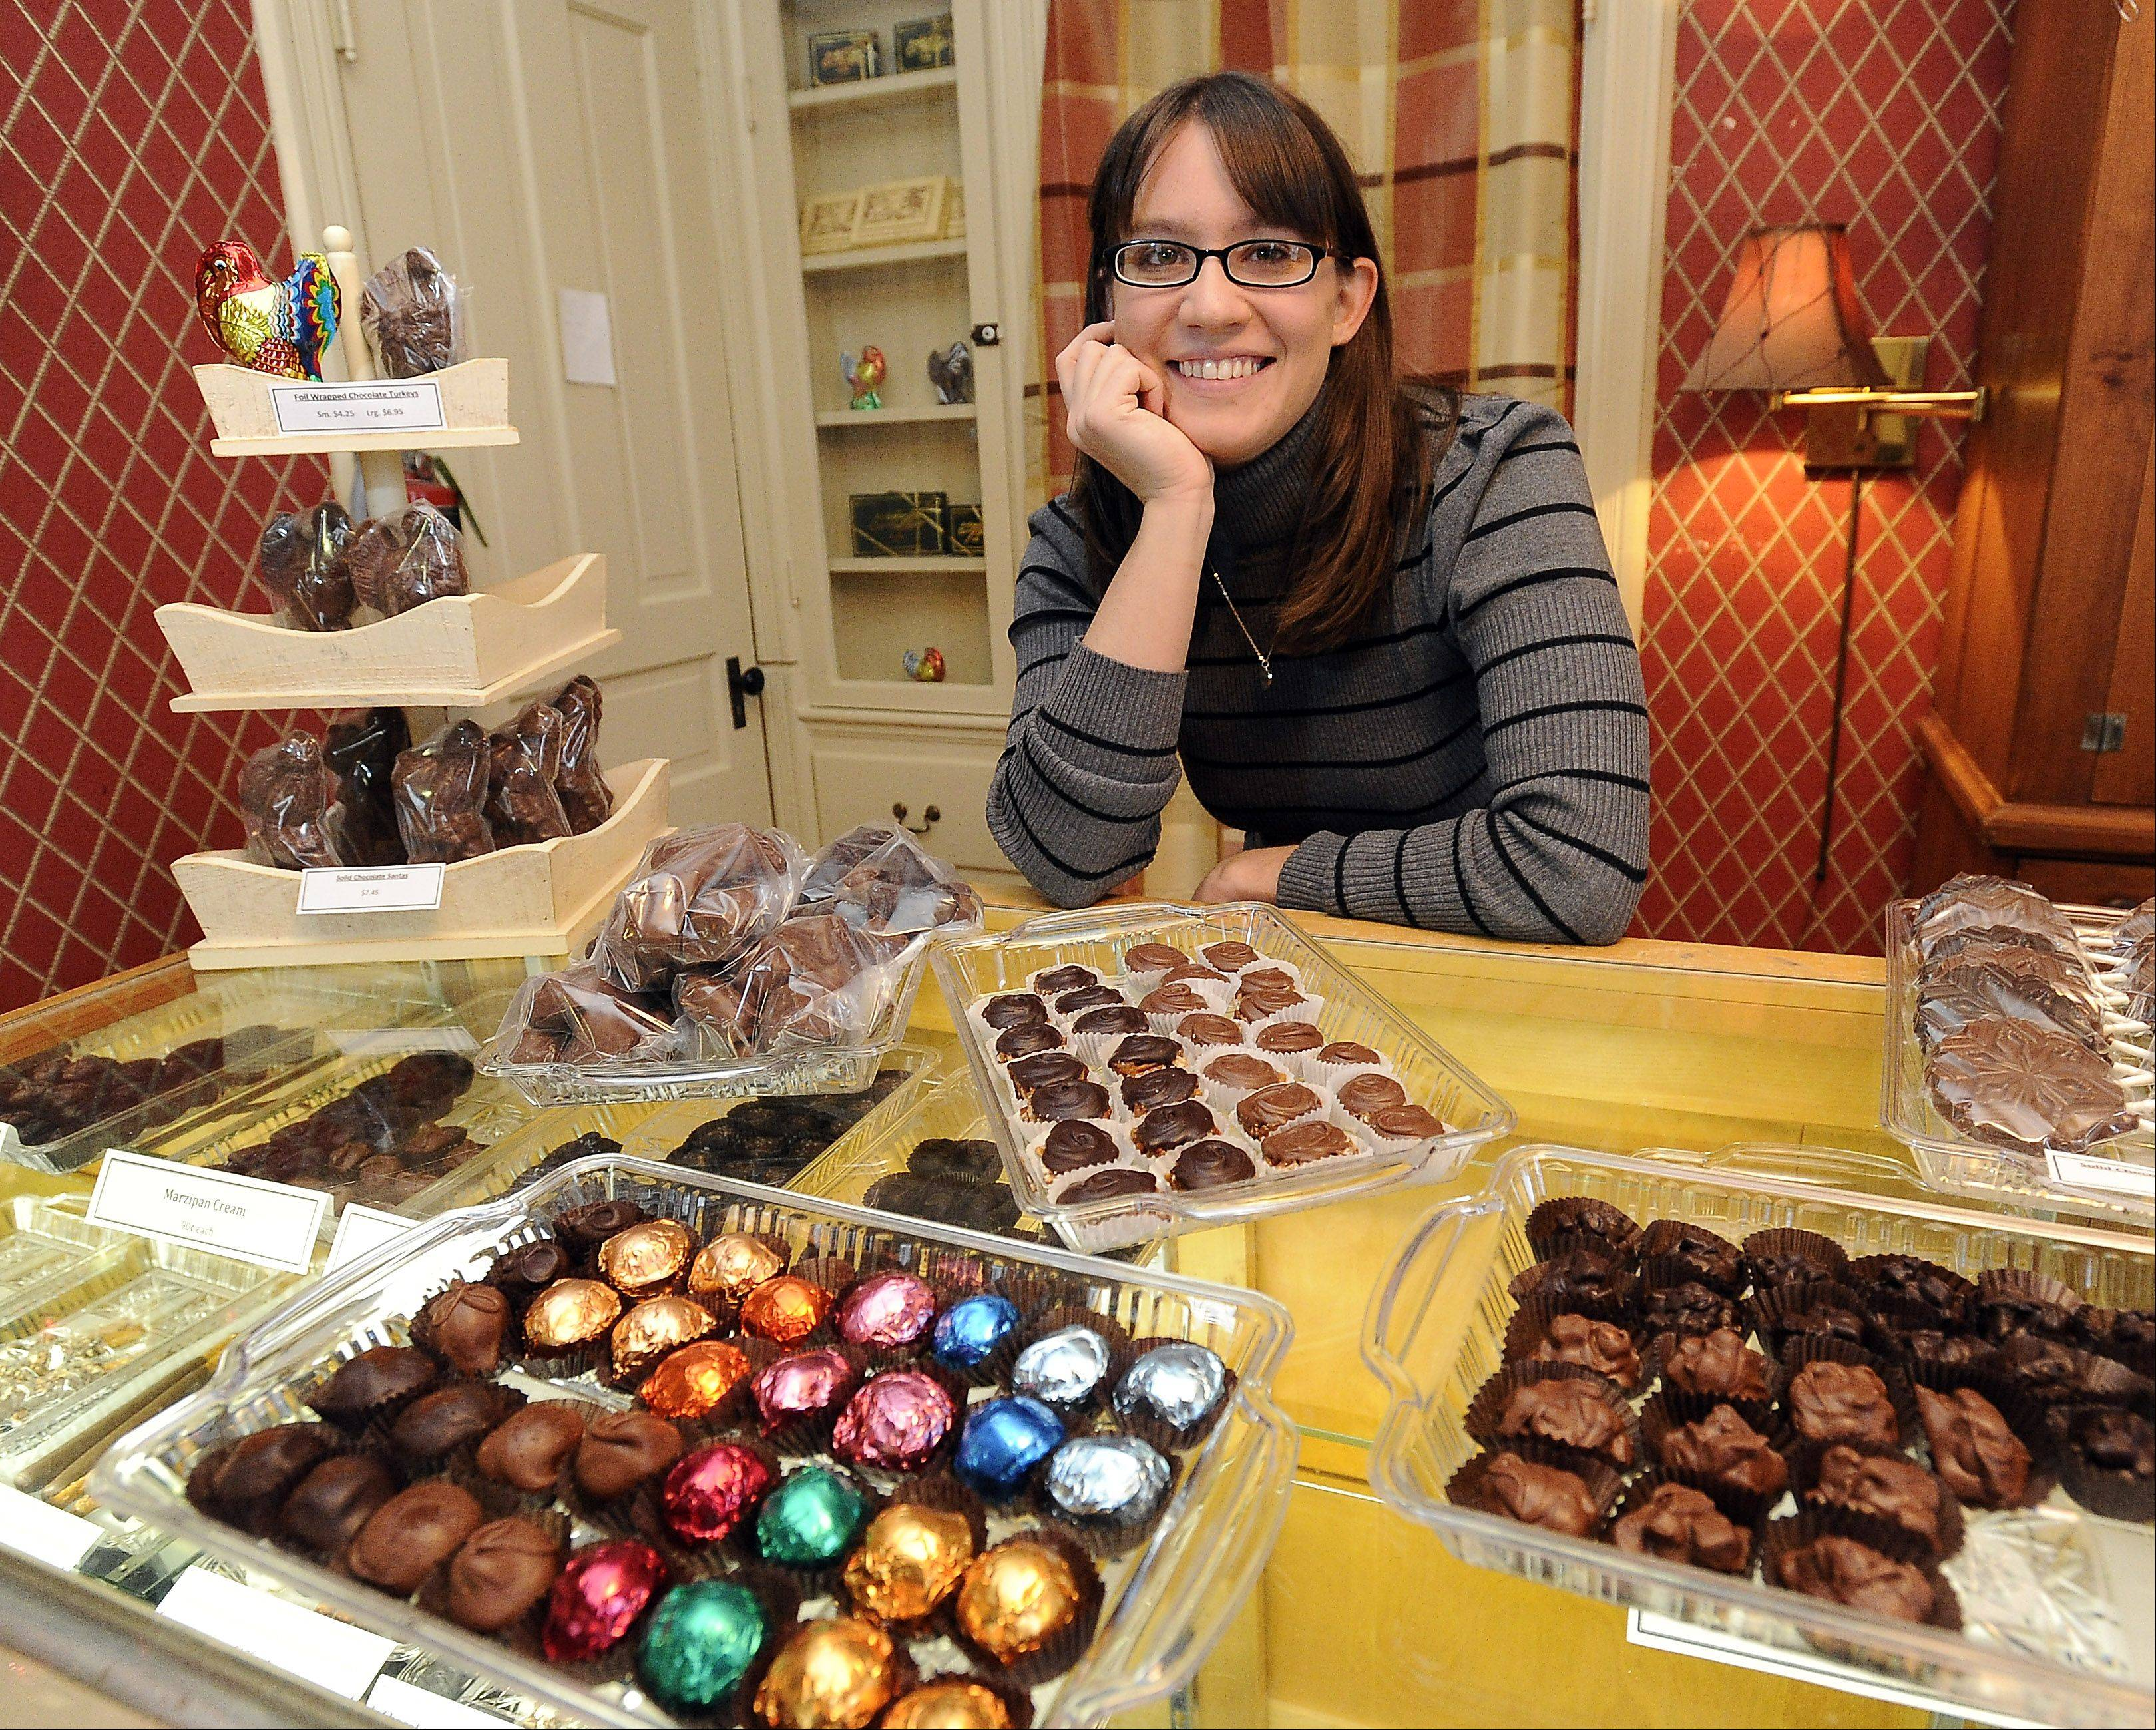 Katie Anderson-Tedder, a fourth generation candy maker, is in charge of the chocolate delights at Anderson Candy Shop in Barrington. Anderson-Tedder and her sister, Susanne, designed the �Give Back Box� as a holiday fundraiser for Family Health Partnership Clinic.